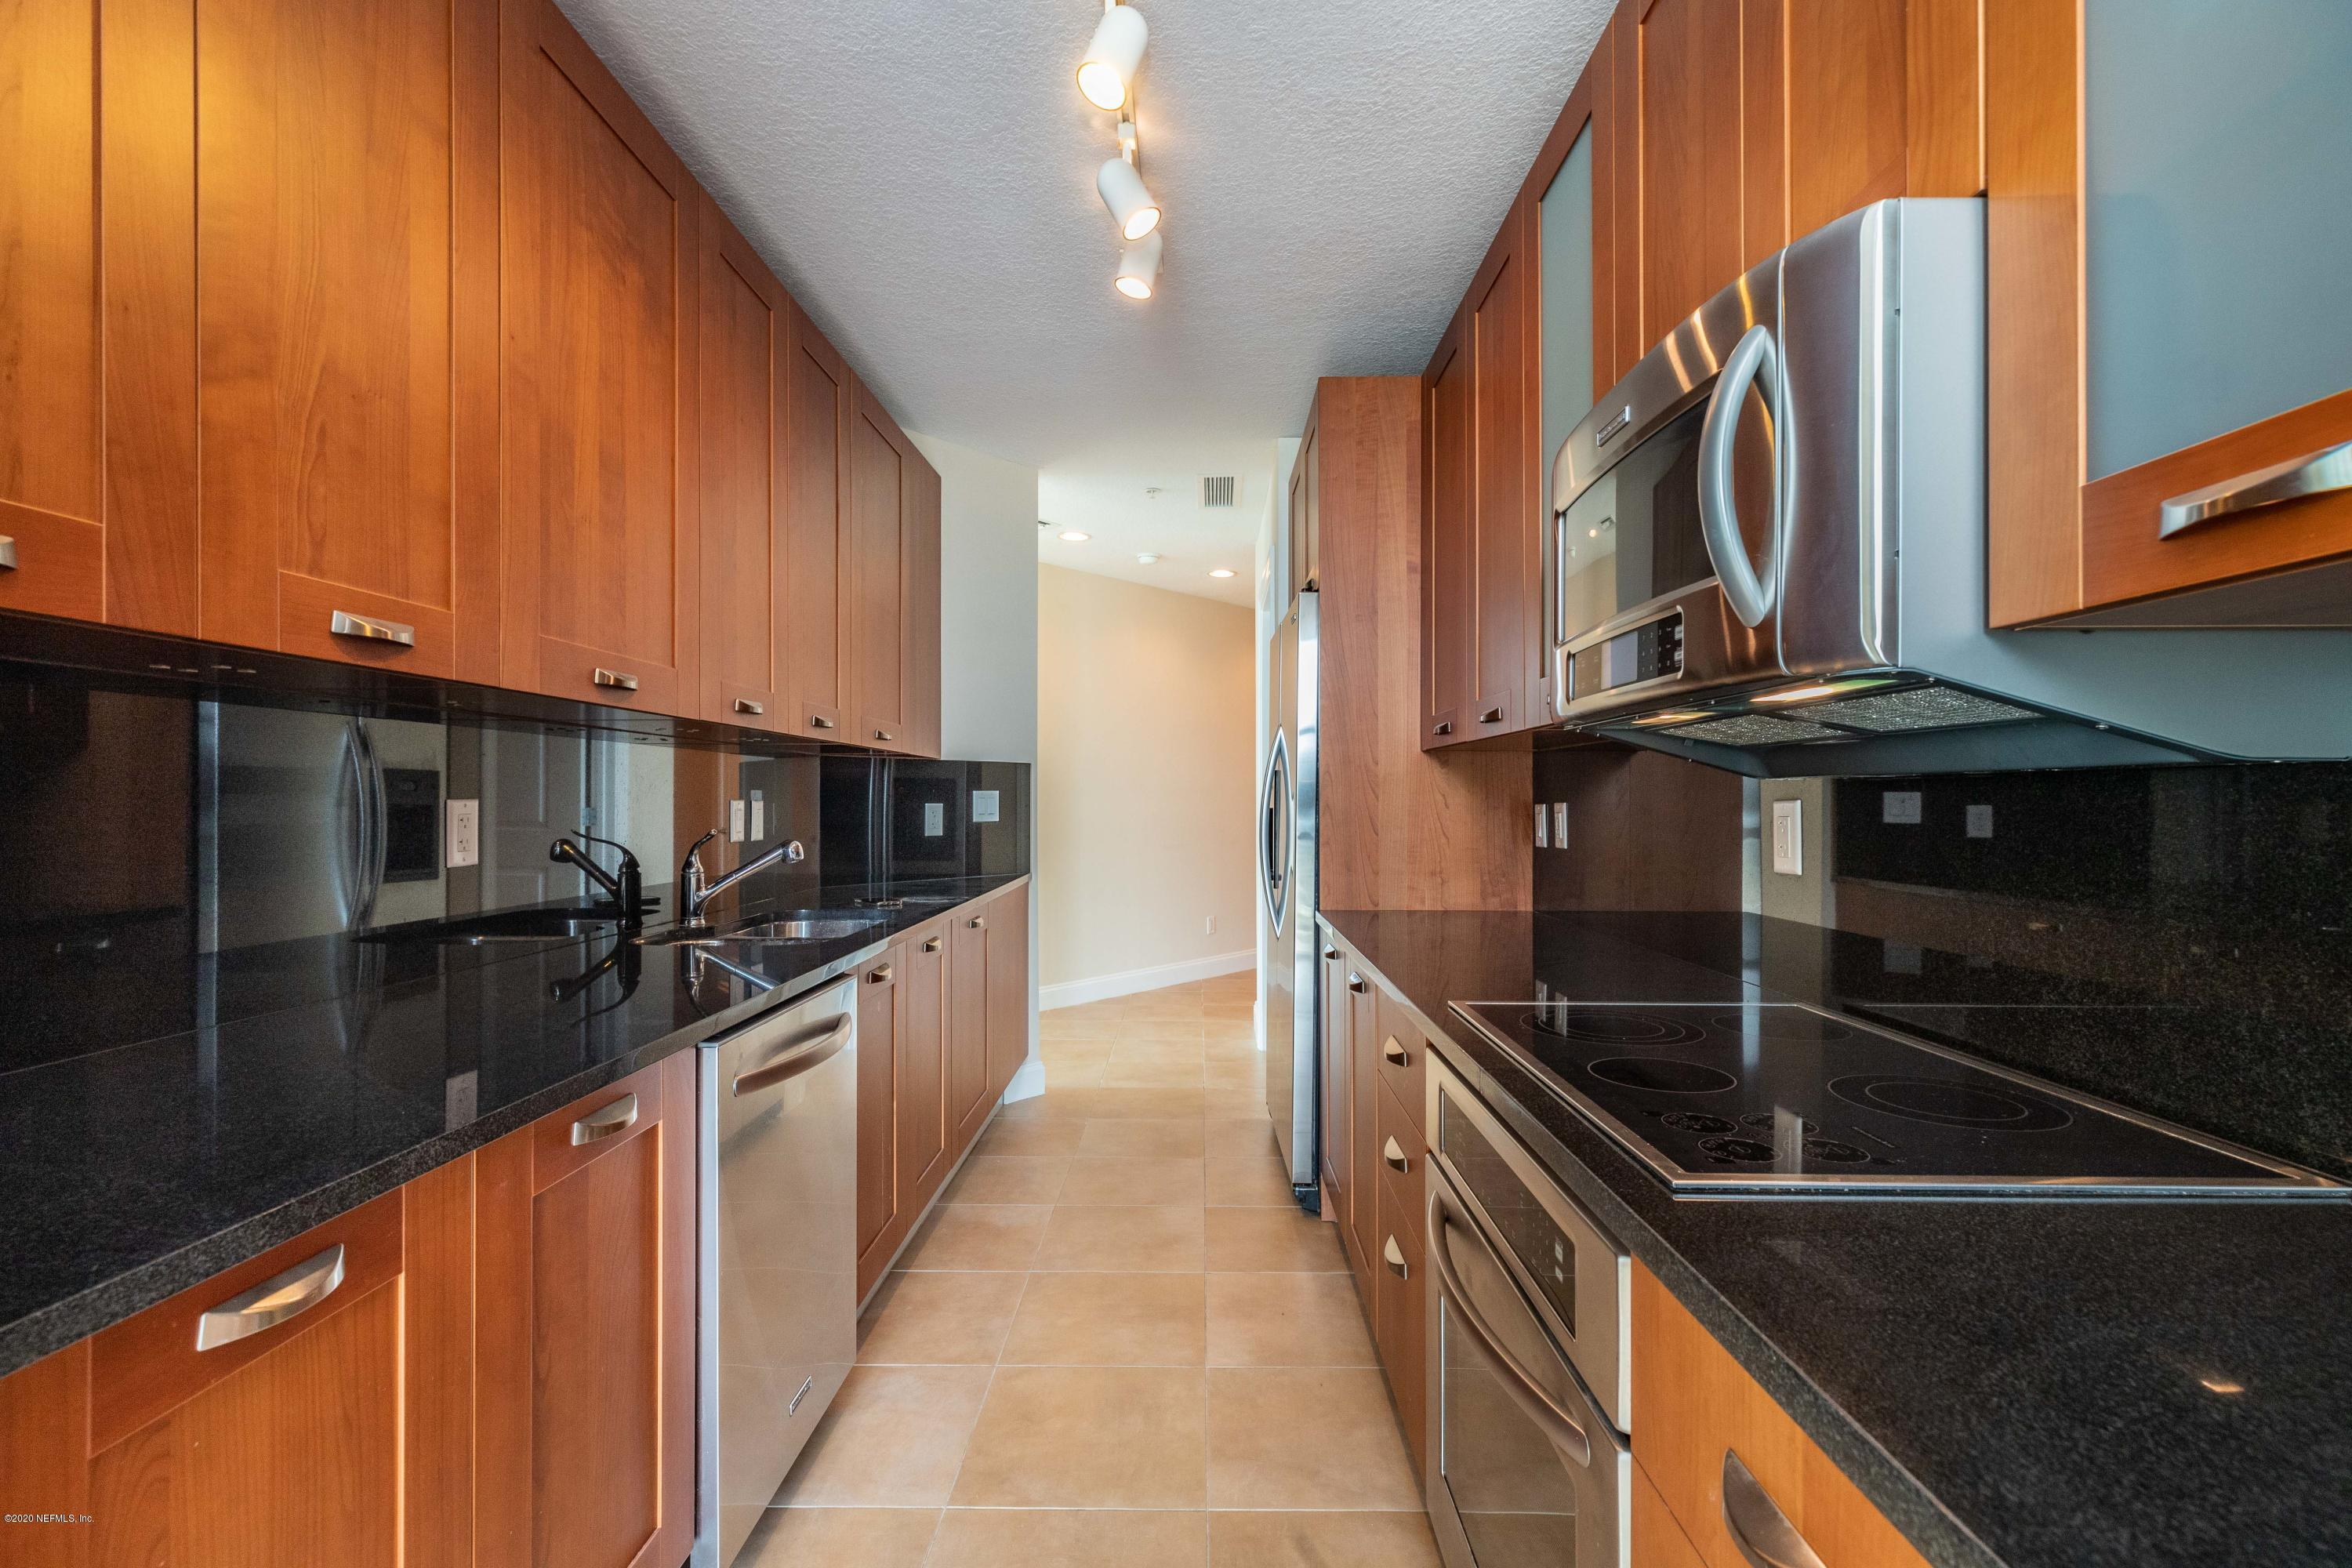 1431 RIVERPLACE, JACKSONVILLE, FLORIDA 32207, 3 Bedrooms Bedrooms, ,3 BathroomsBathrooms,Condo,For sale,RIVERPLACE,925383